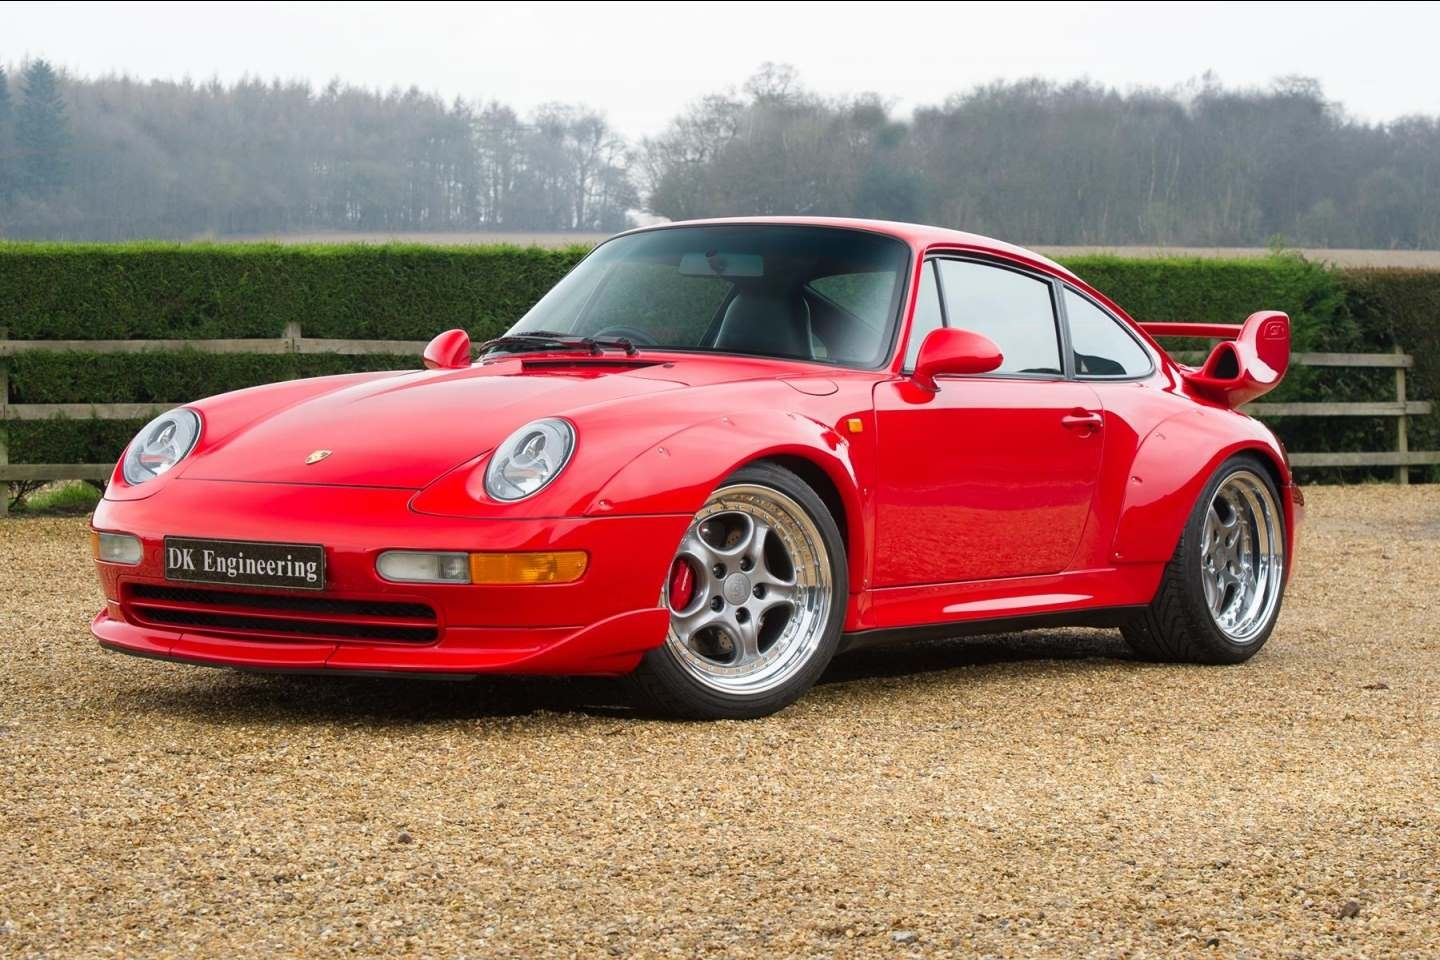 For Sale Nissan Skyline >> Porsche 993 GT2 for sale - Vehicle Sales - DK Engineering